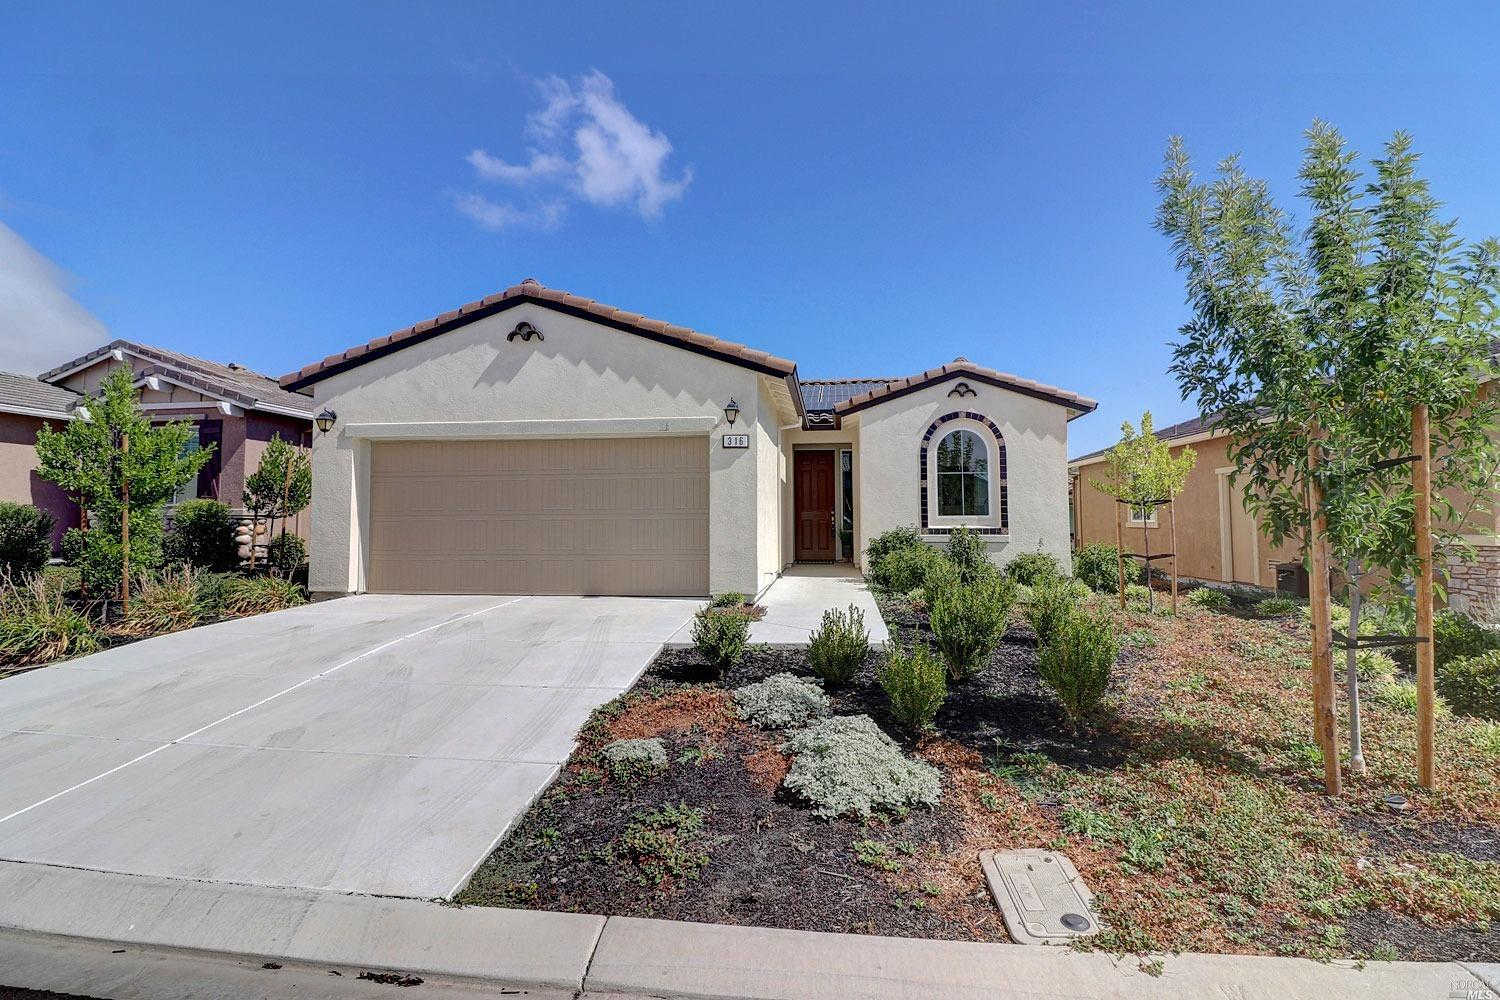 316 Kestrel Way, Rio Vista, CA 94571 has an Open House on  Saturday, October 12, 2019 1:00 PM to 4:00 PM